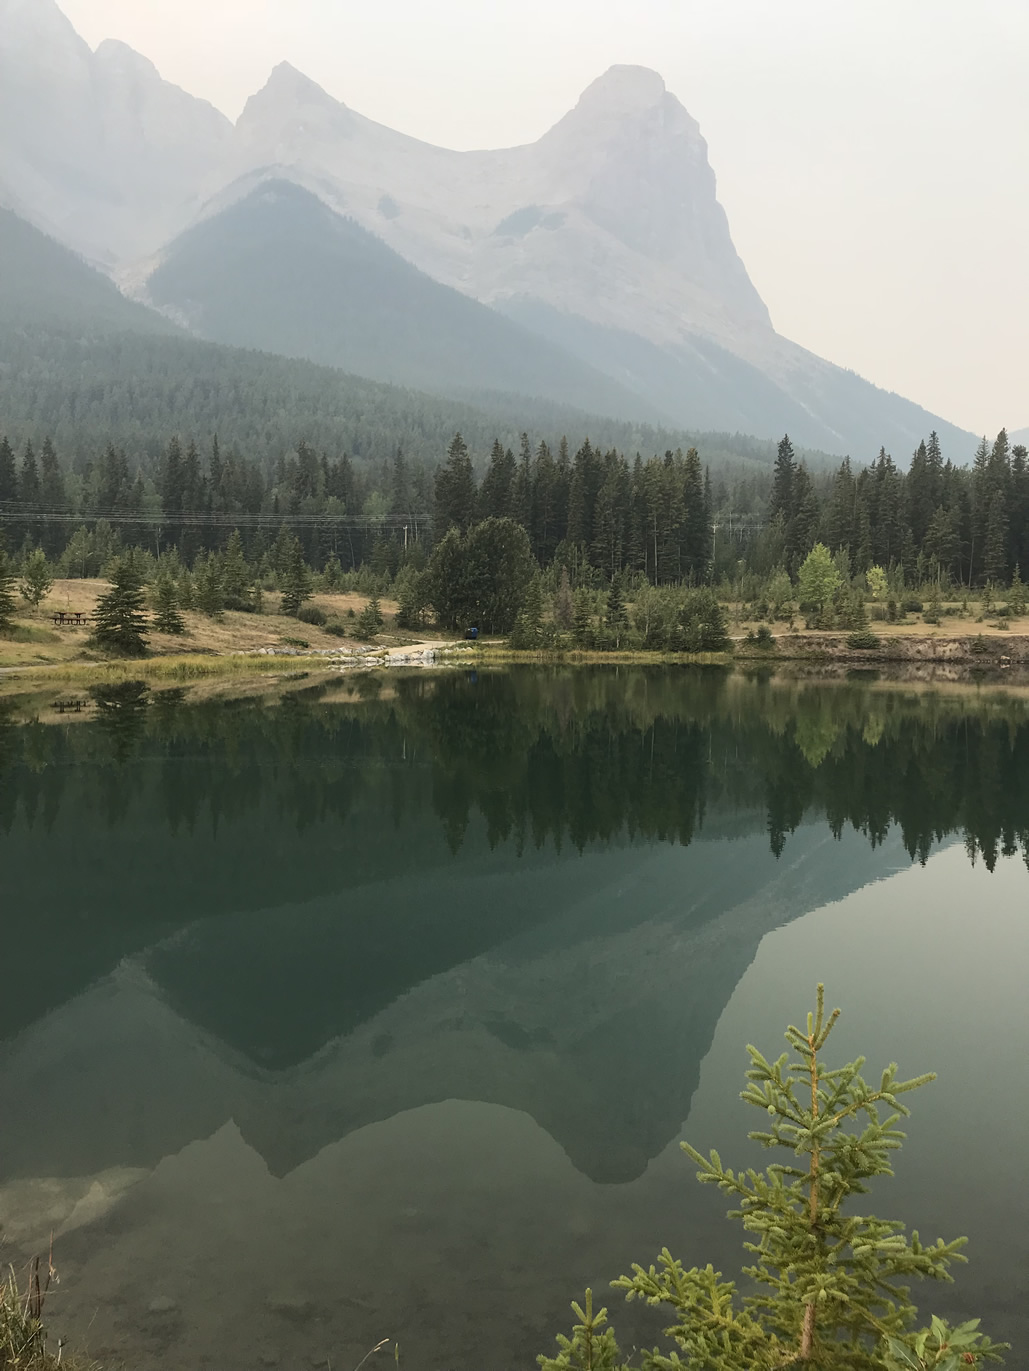 Hazy reflection at Canmore's Quarry pond (below Ha Ling Peak)